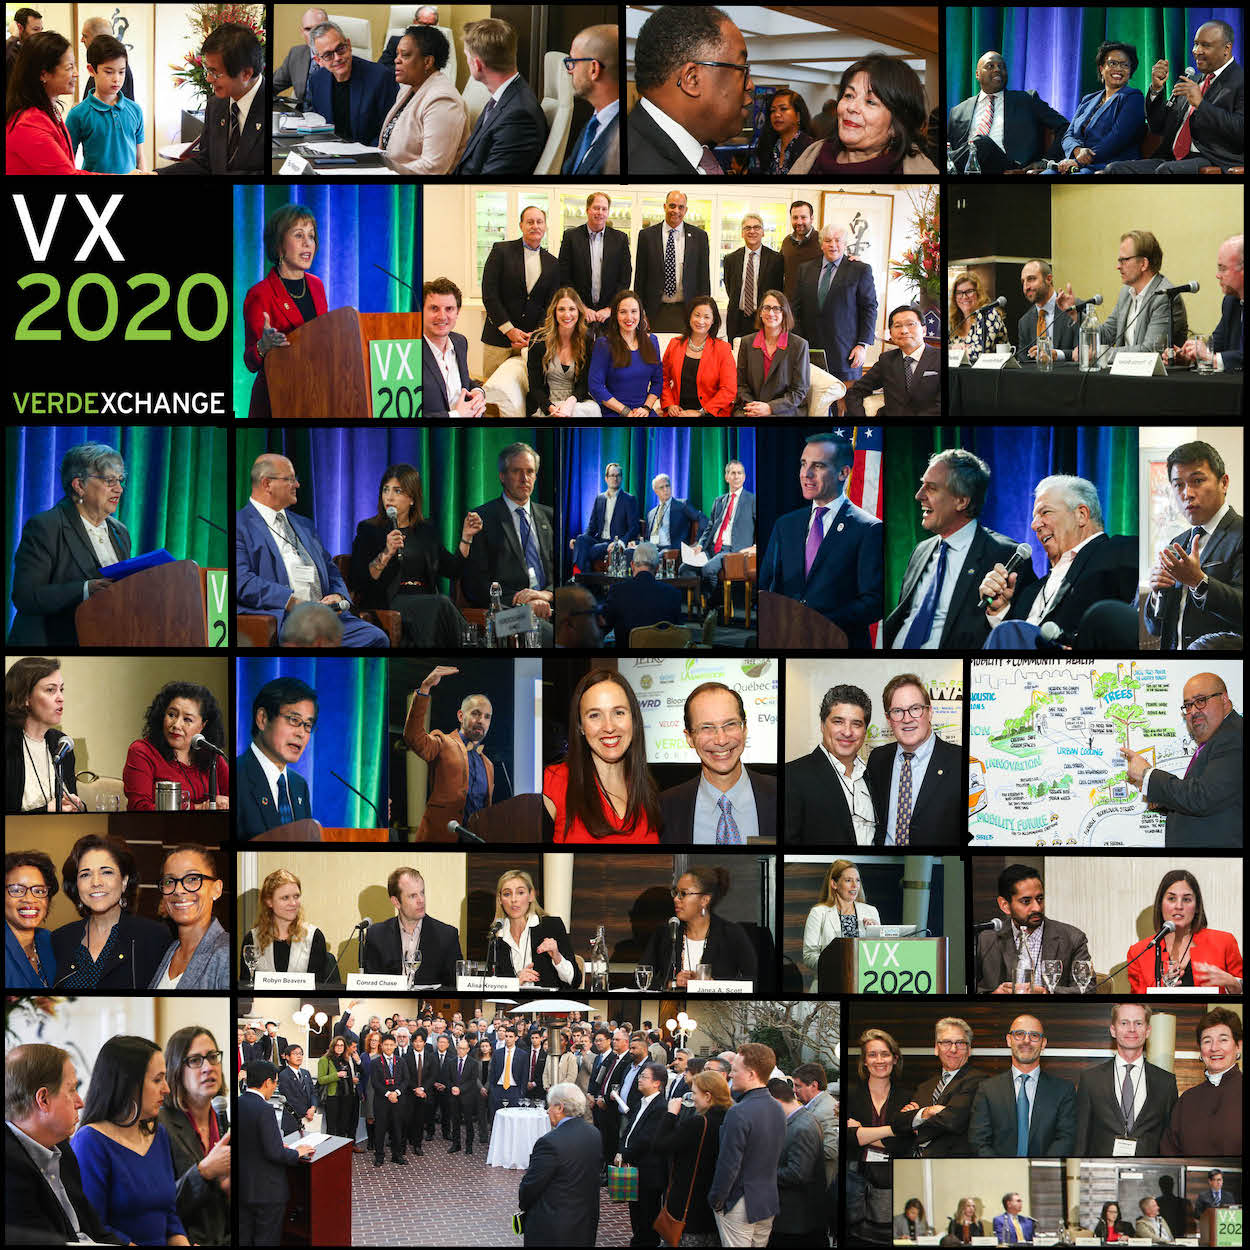 VX2020 Photo Collage